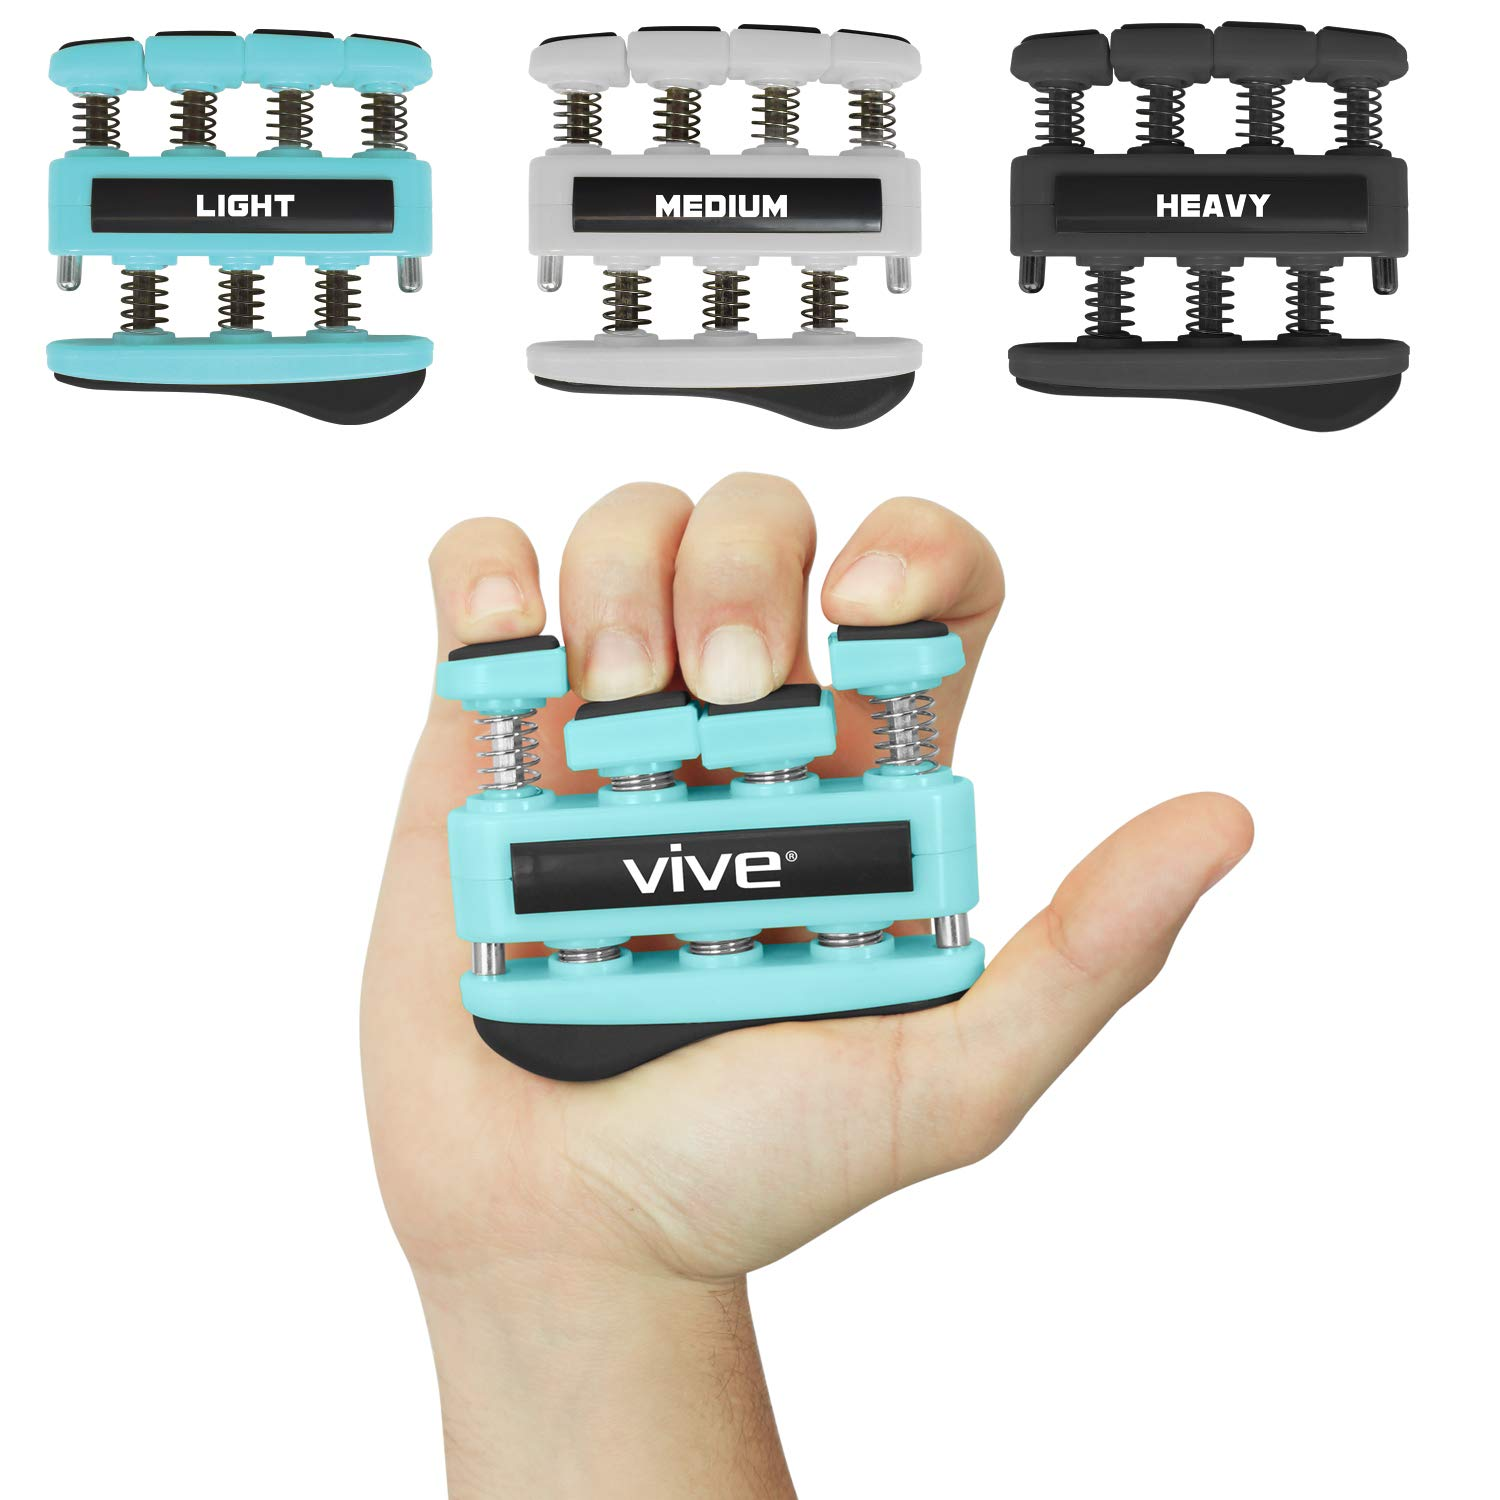 VIVE Finger Strengthener (3 Pack) - Guitar Digit Exerciser - Hand Grip Workout Equipment for Musician, Rock Climbing and Therapy - Master Gripper Exercise Tool - Forearm Muscle Strengthening Kit